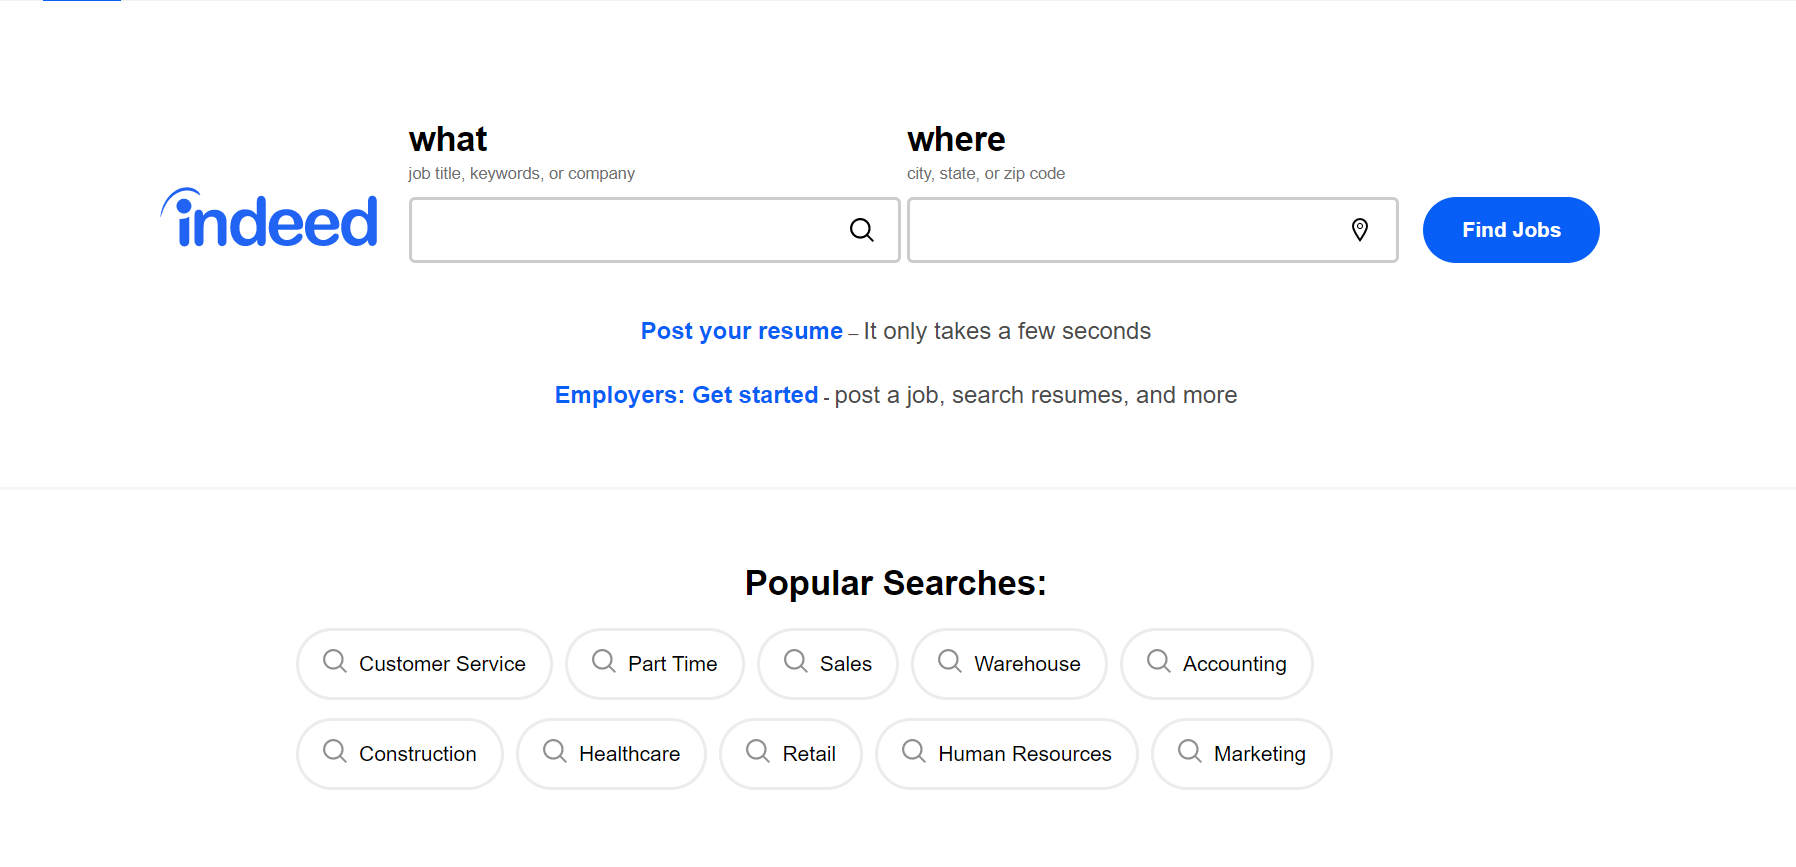 Job post resume search cheap book review writers sites for mba